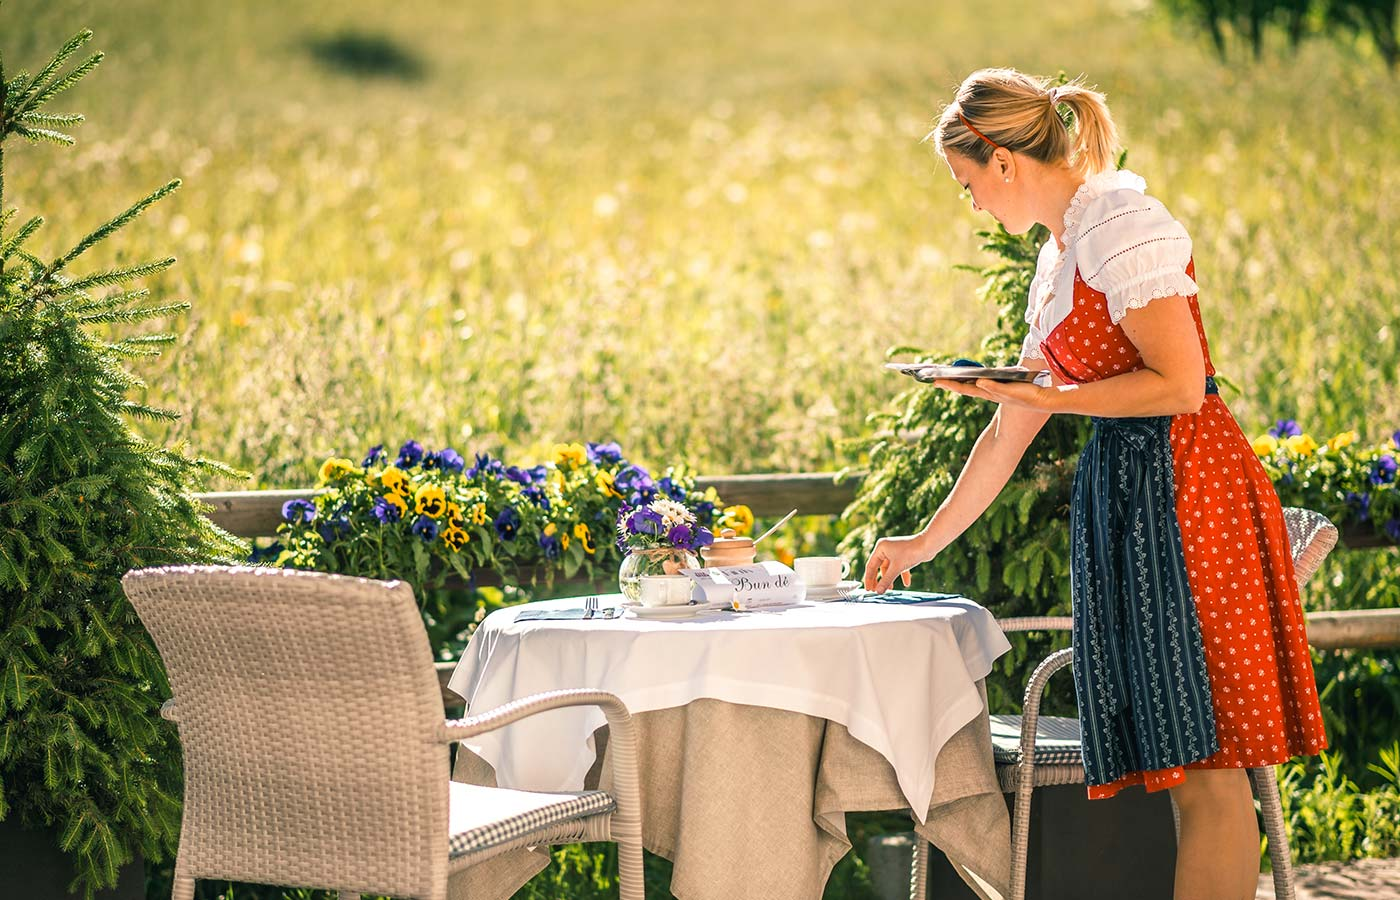 A waitress setting the table outside on a sunny day